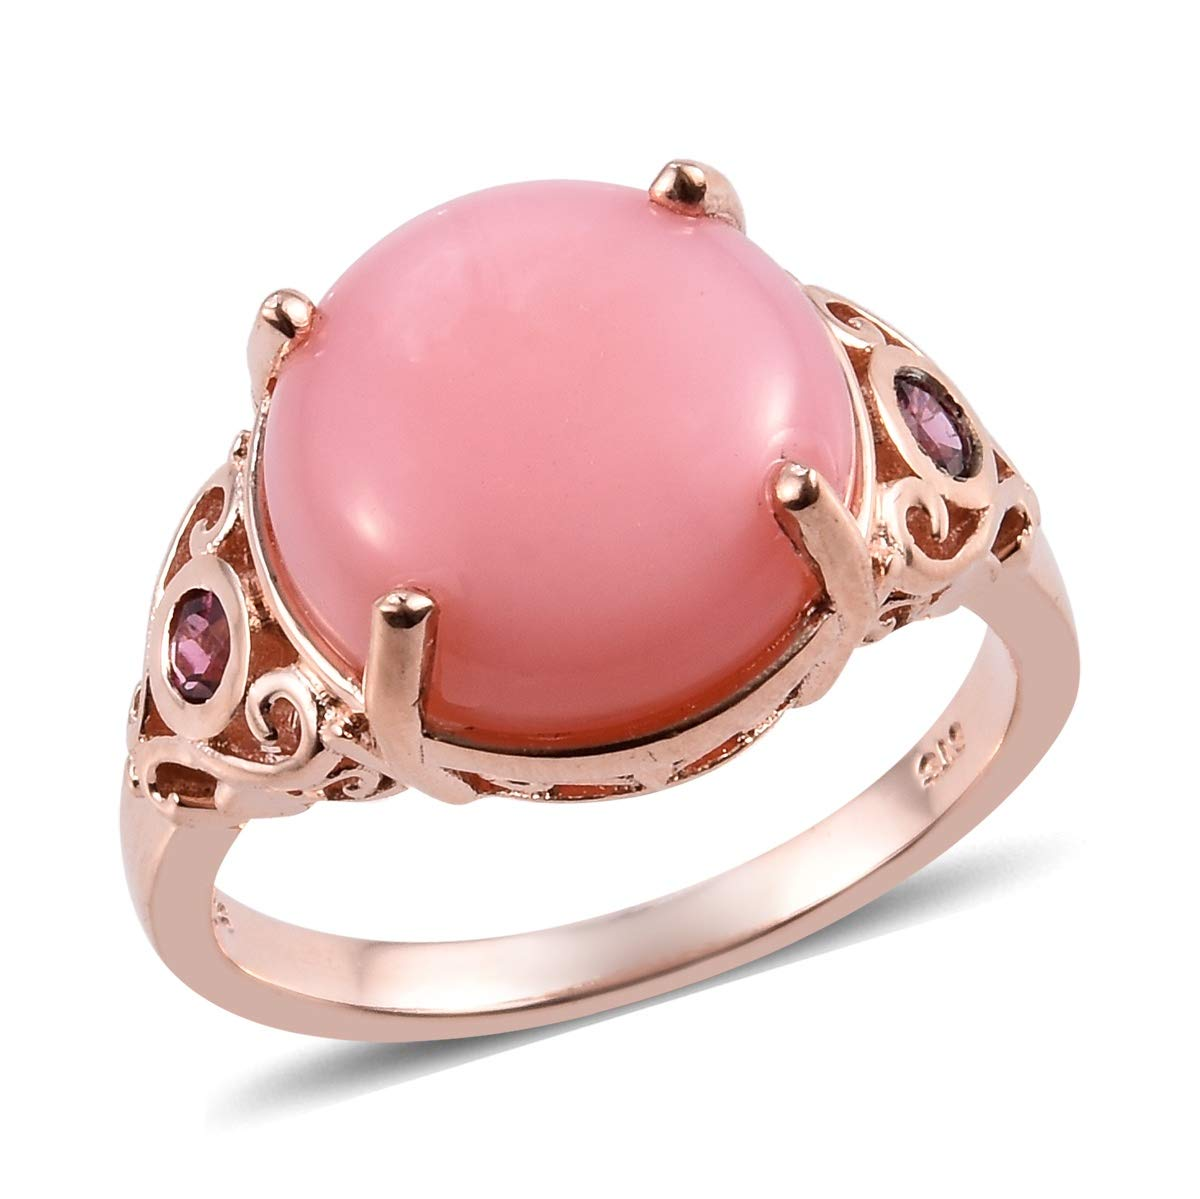 Pink Opal Pink Tourmaline Promise Ring 925 Sterling Silver Vermeil Rose Gold Jewelry for Women Size 6 by Shop LC Delivering Joy